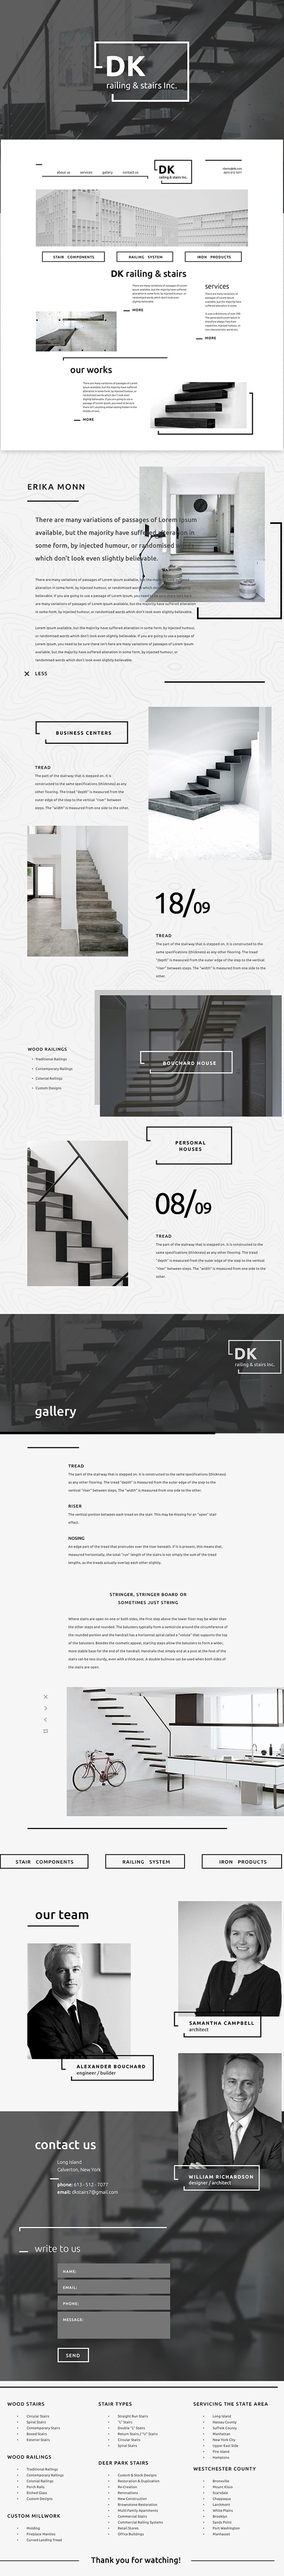 DK // railing & stairs Inc. on Behance